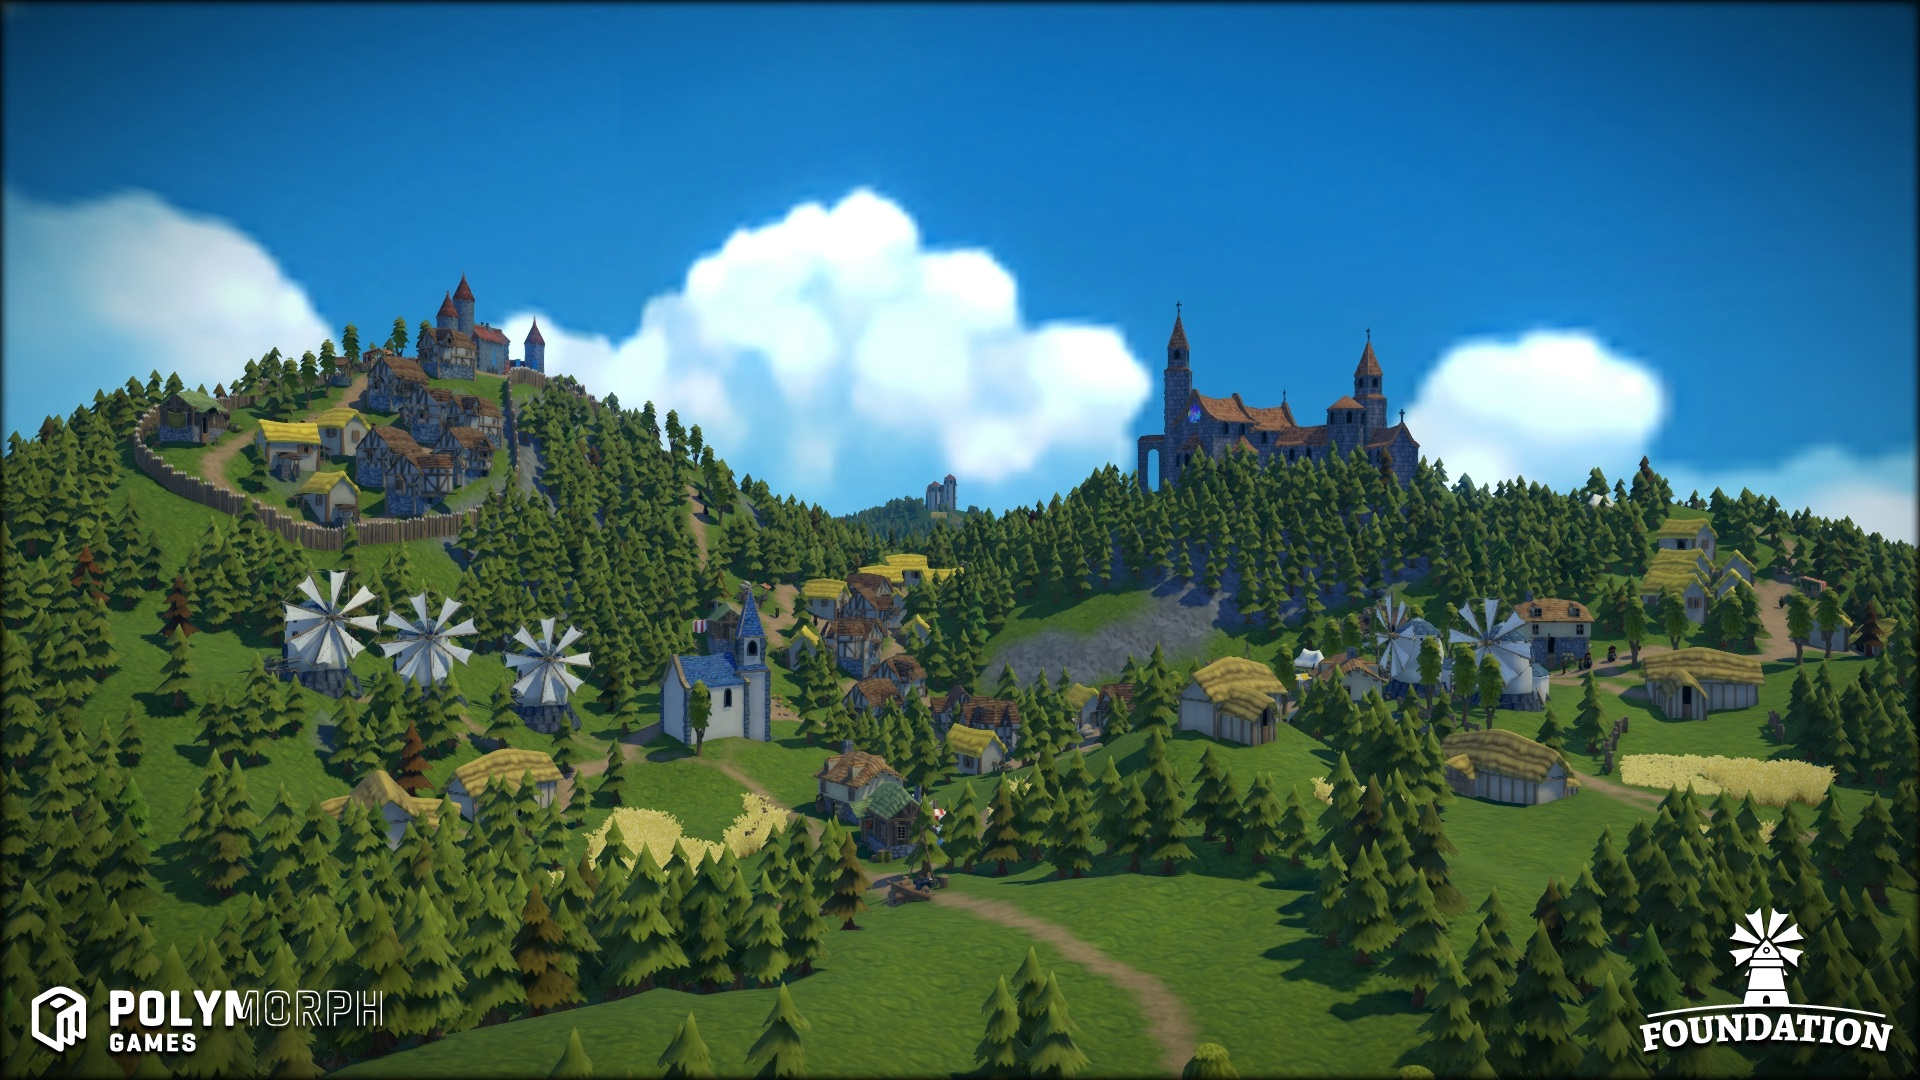 Foundation is a freeform medieval city builder with no grids to